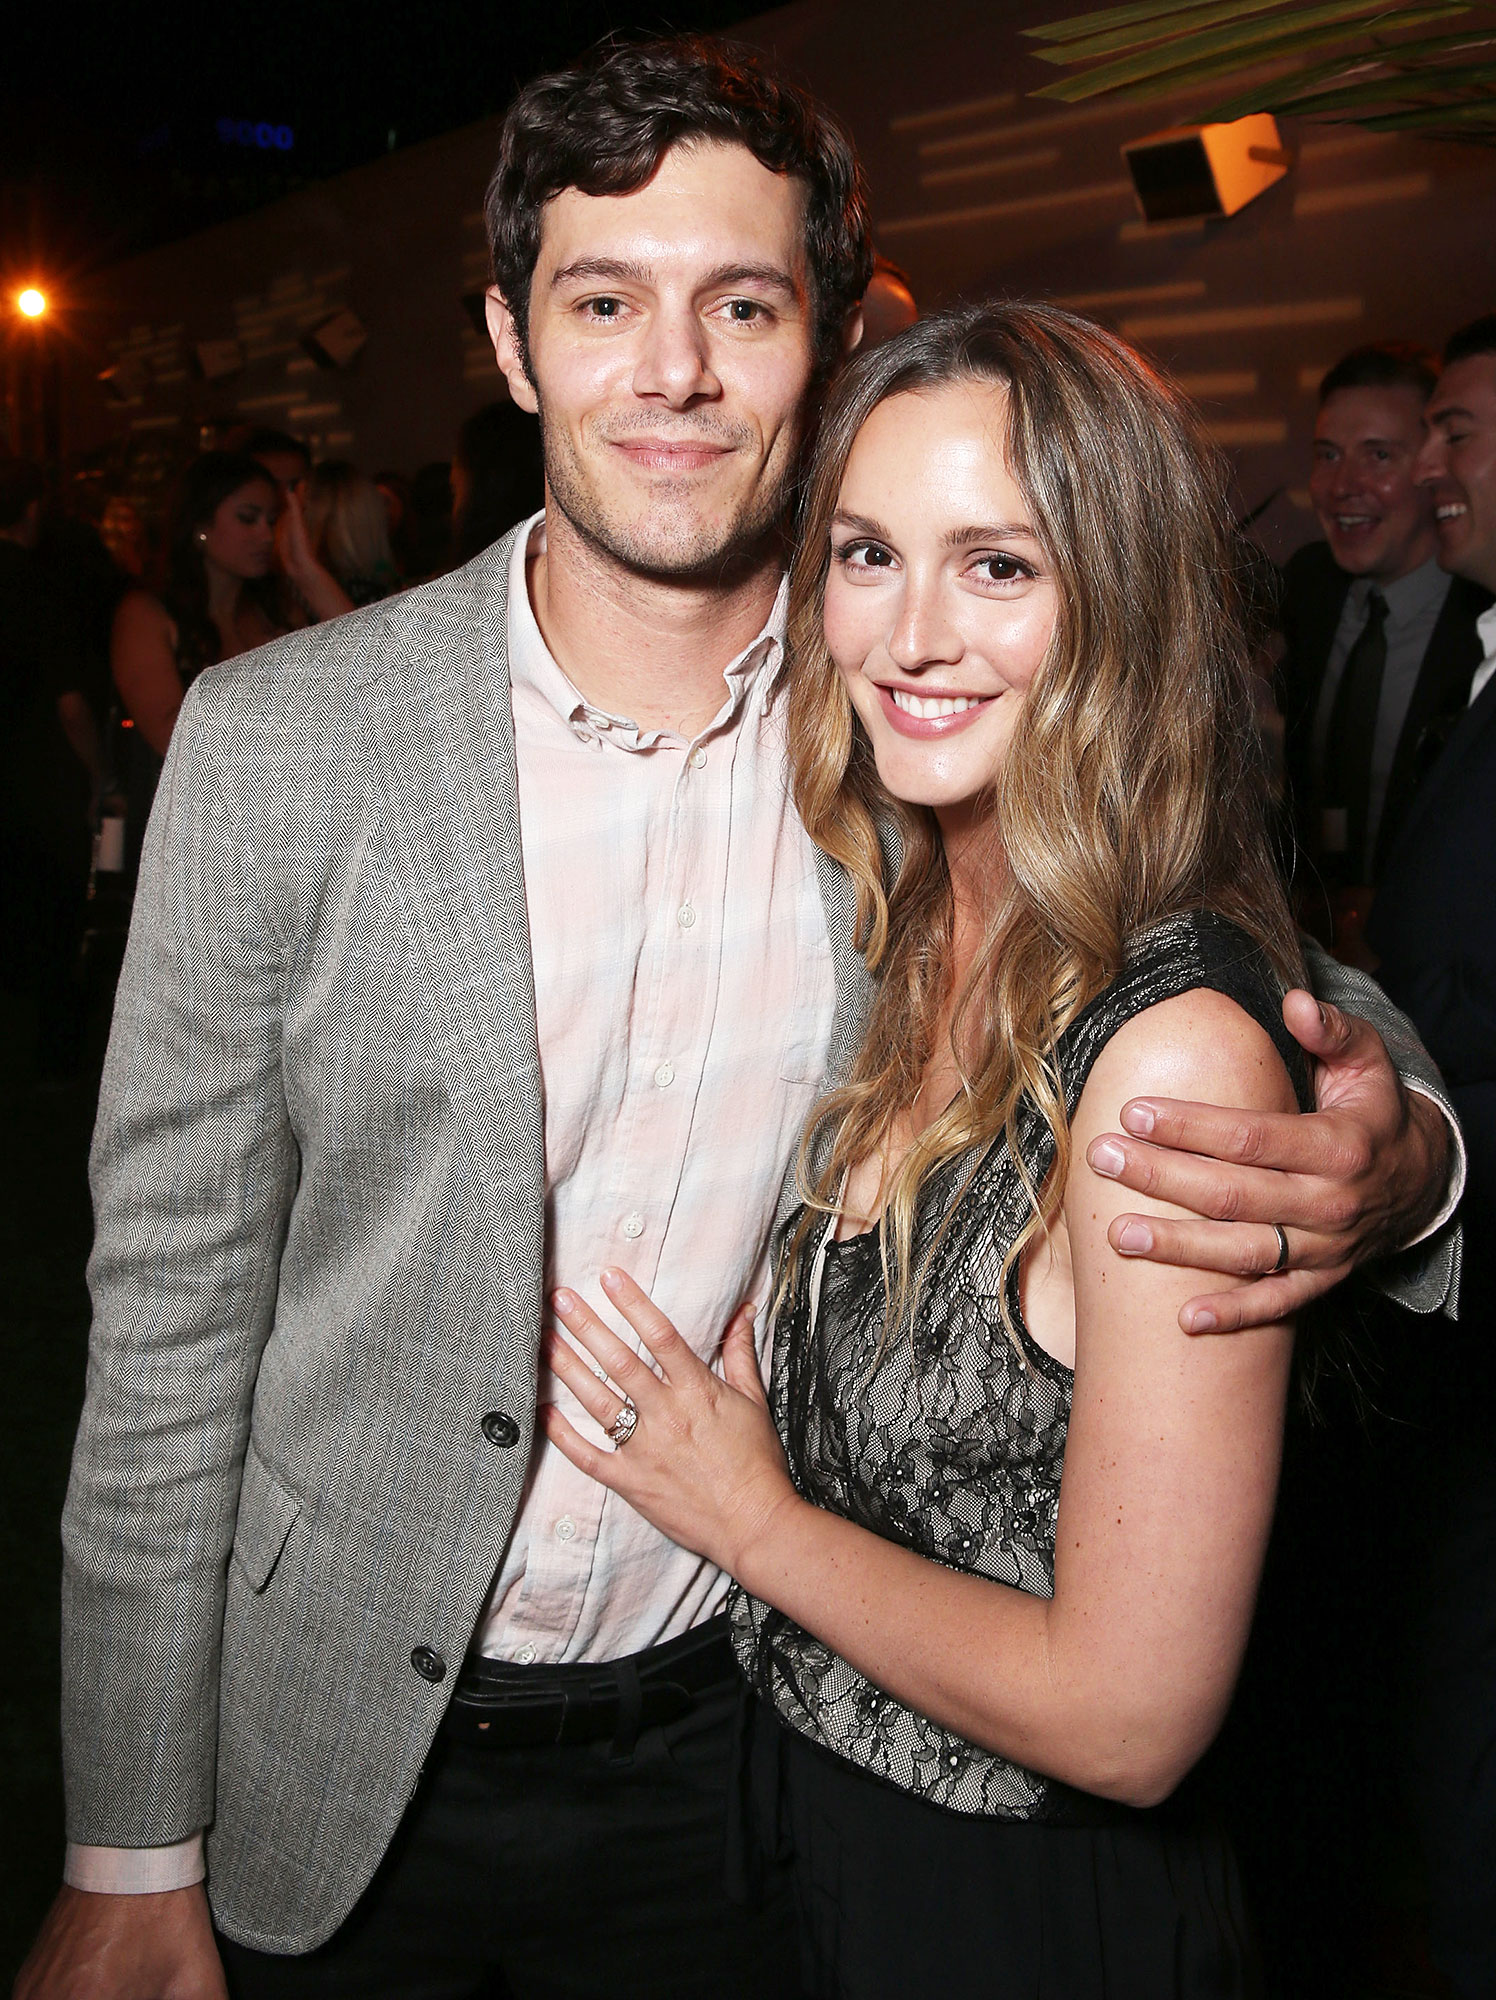 Leighton Meester Adam Brody Relationship Timeline - Us exclusively confirmed in September 2015 that the A-listers welcomed their first child together, daughter Arlo.